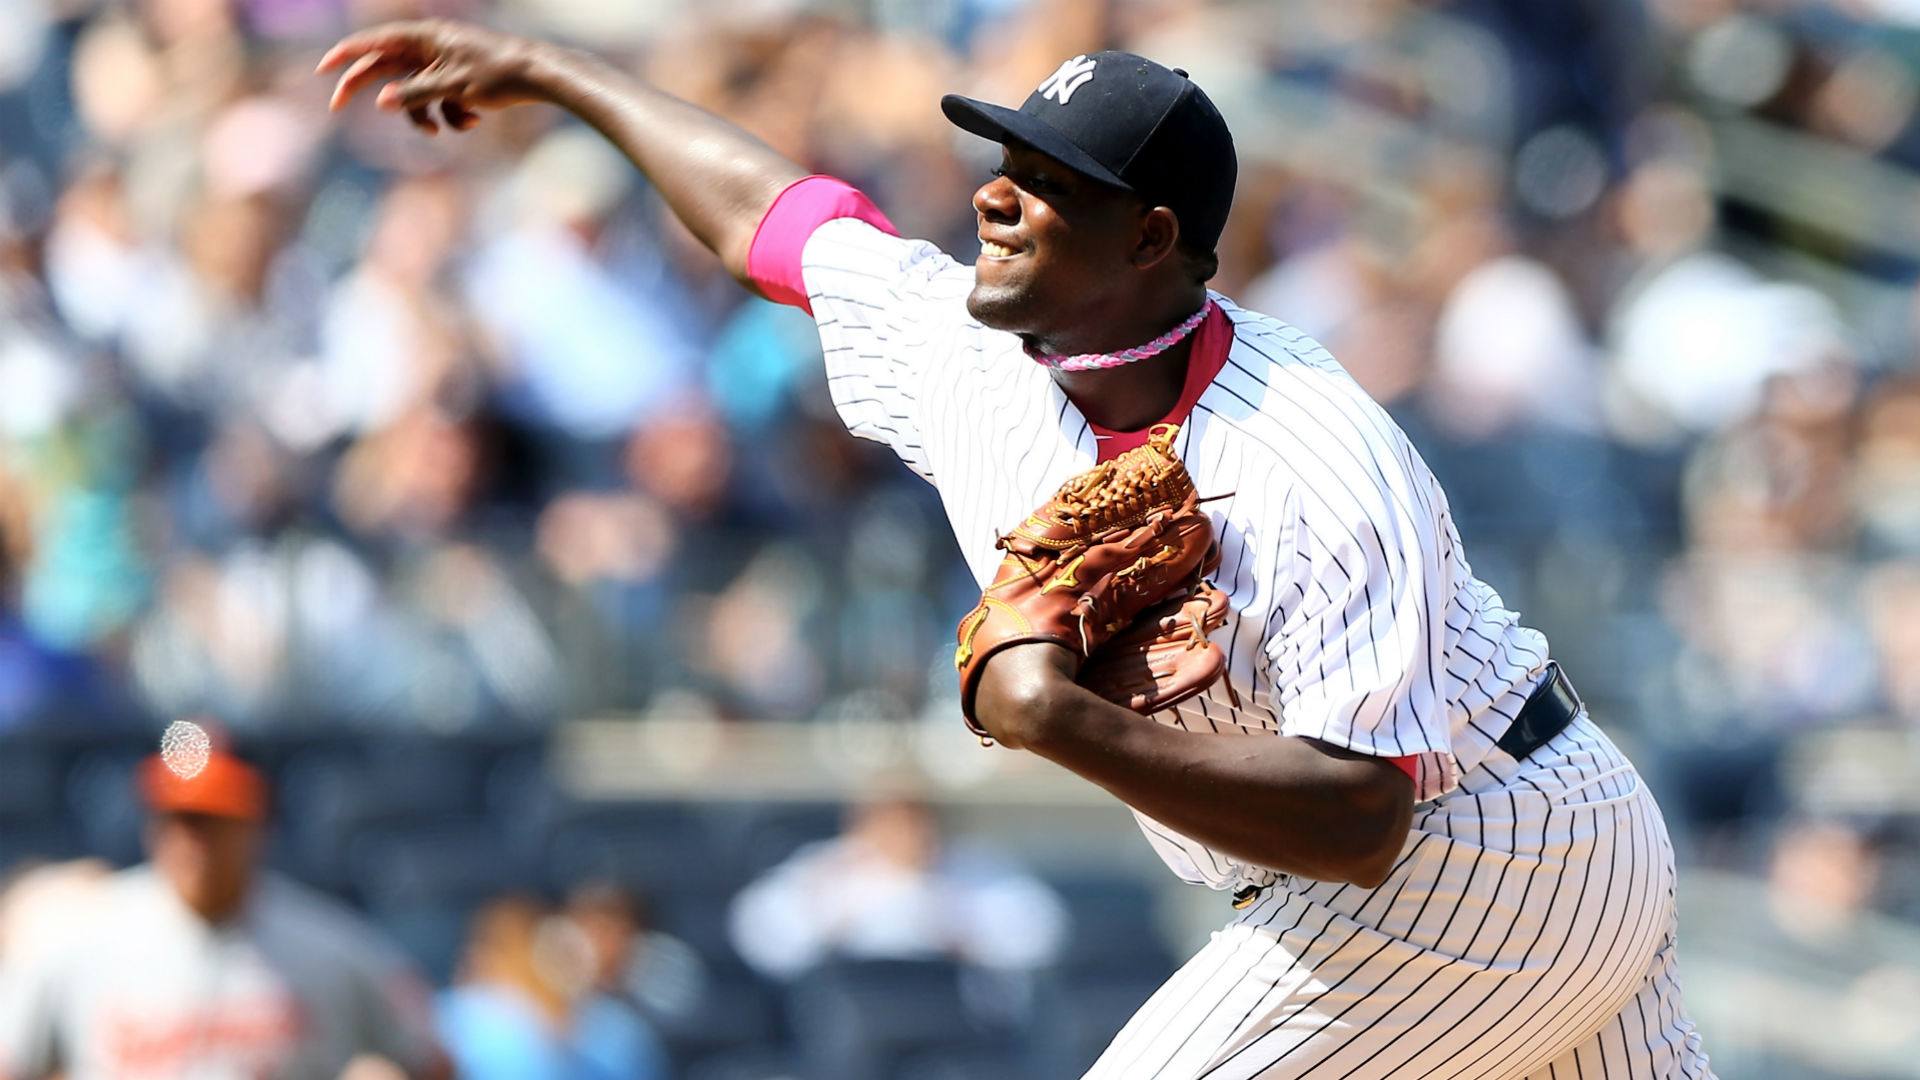 Yankees' Michael Pineda ruled out until September